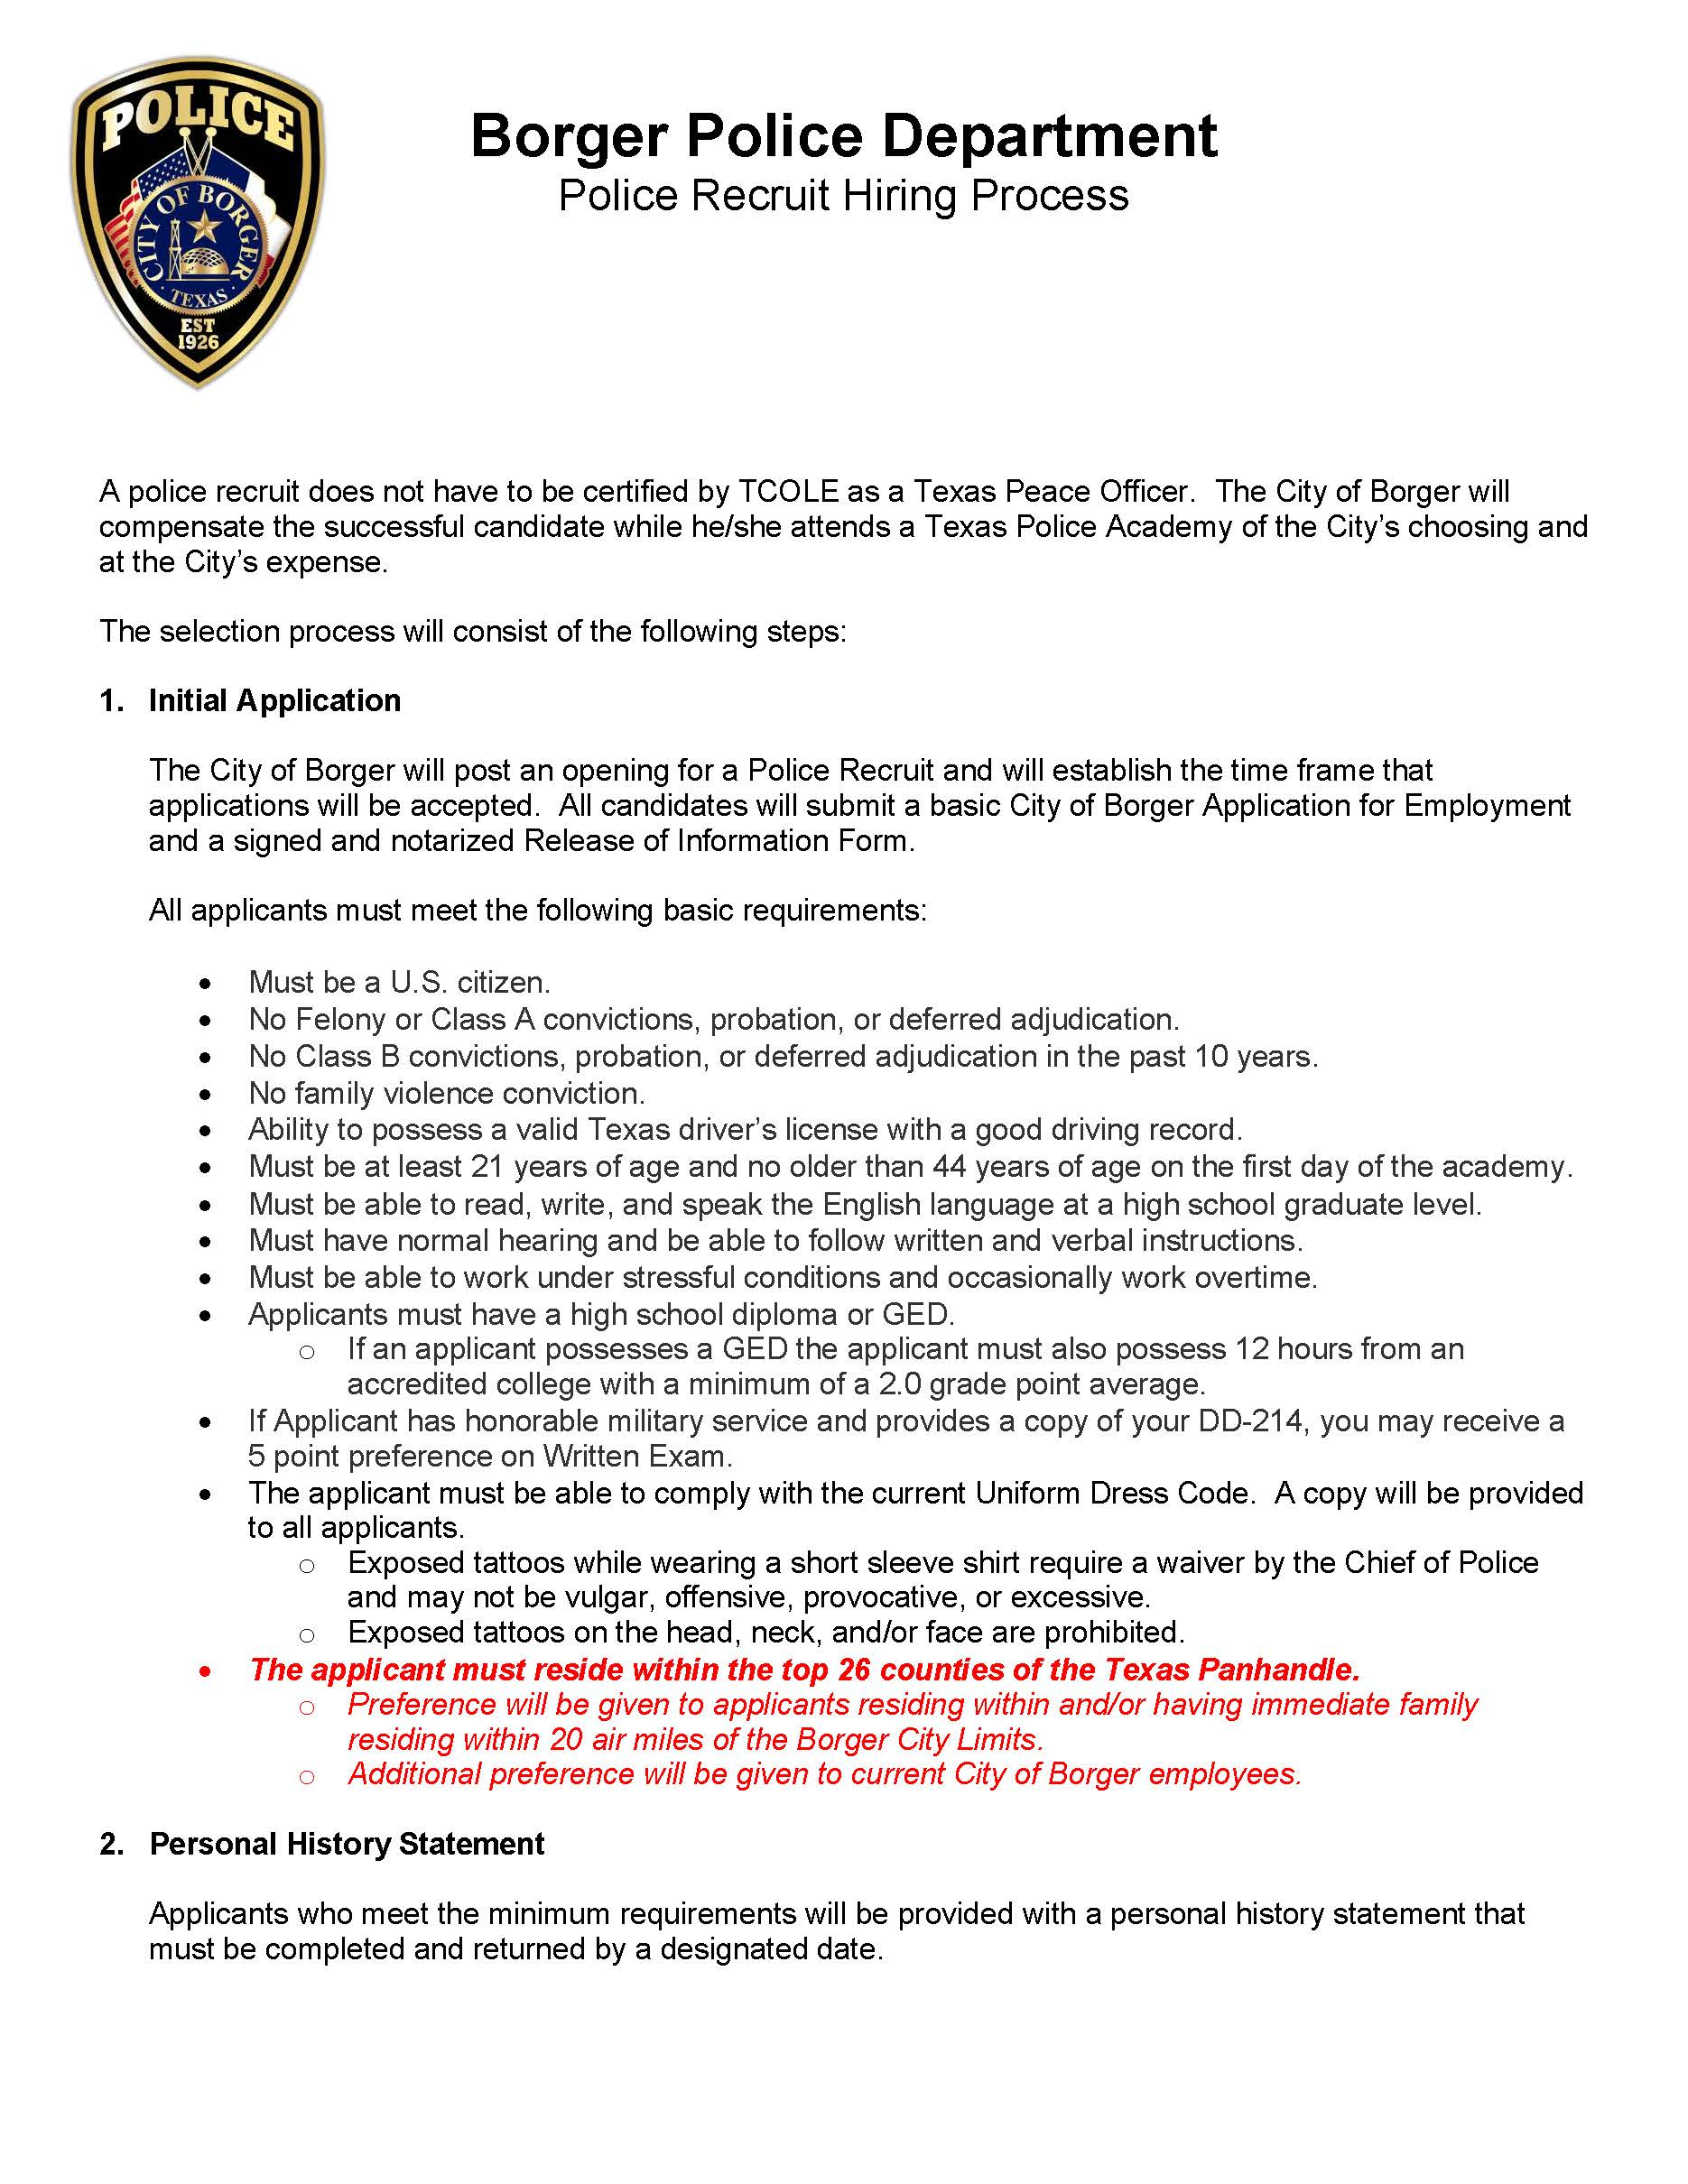 2019 - Police Recurit Hiring Process 3page_Page_1